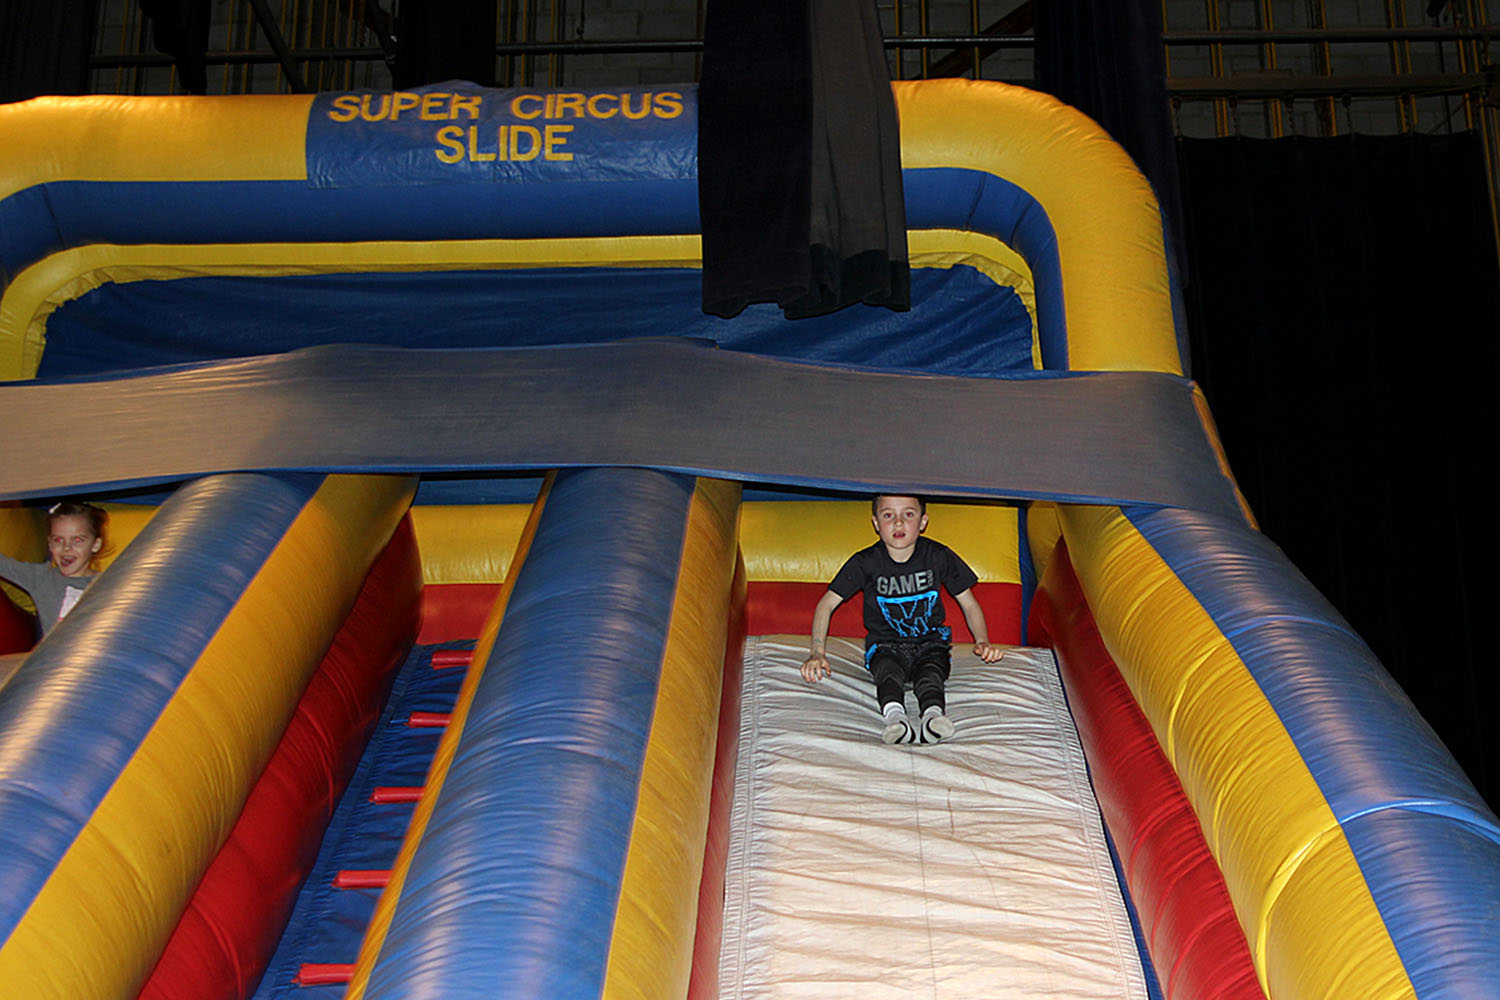 The Giant Slide and Bounce House: Both are always a hit with the younger crowd.